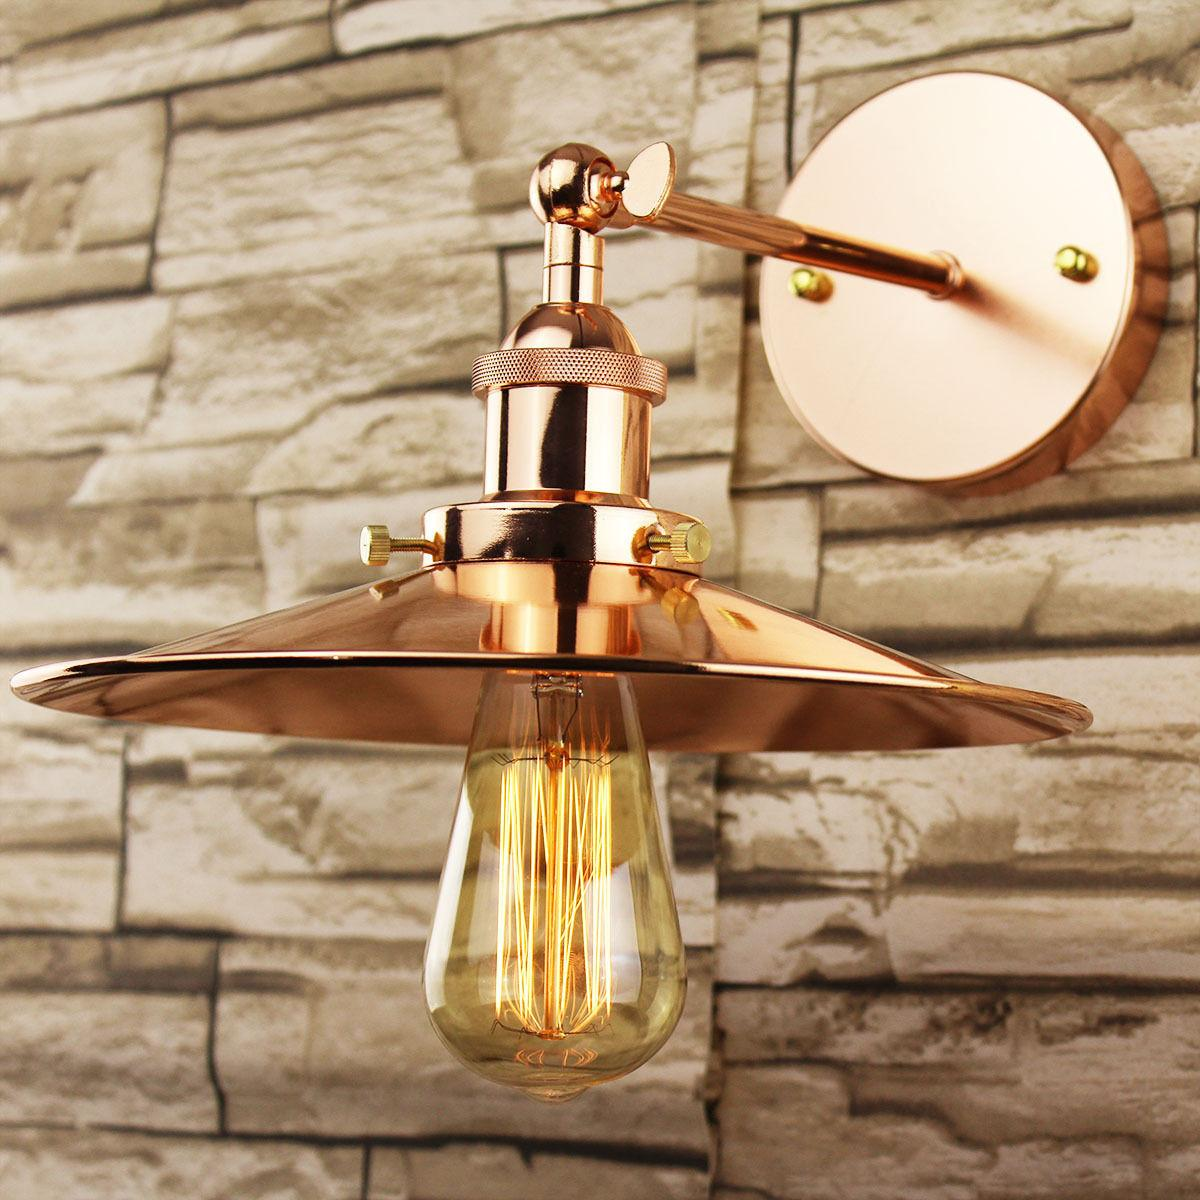 Industrial Retro Vintage Copper Metal Lamp Shade Diy